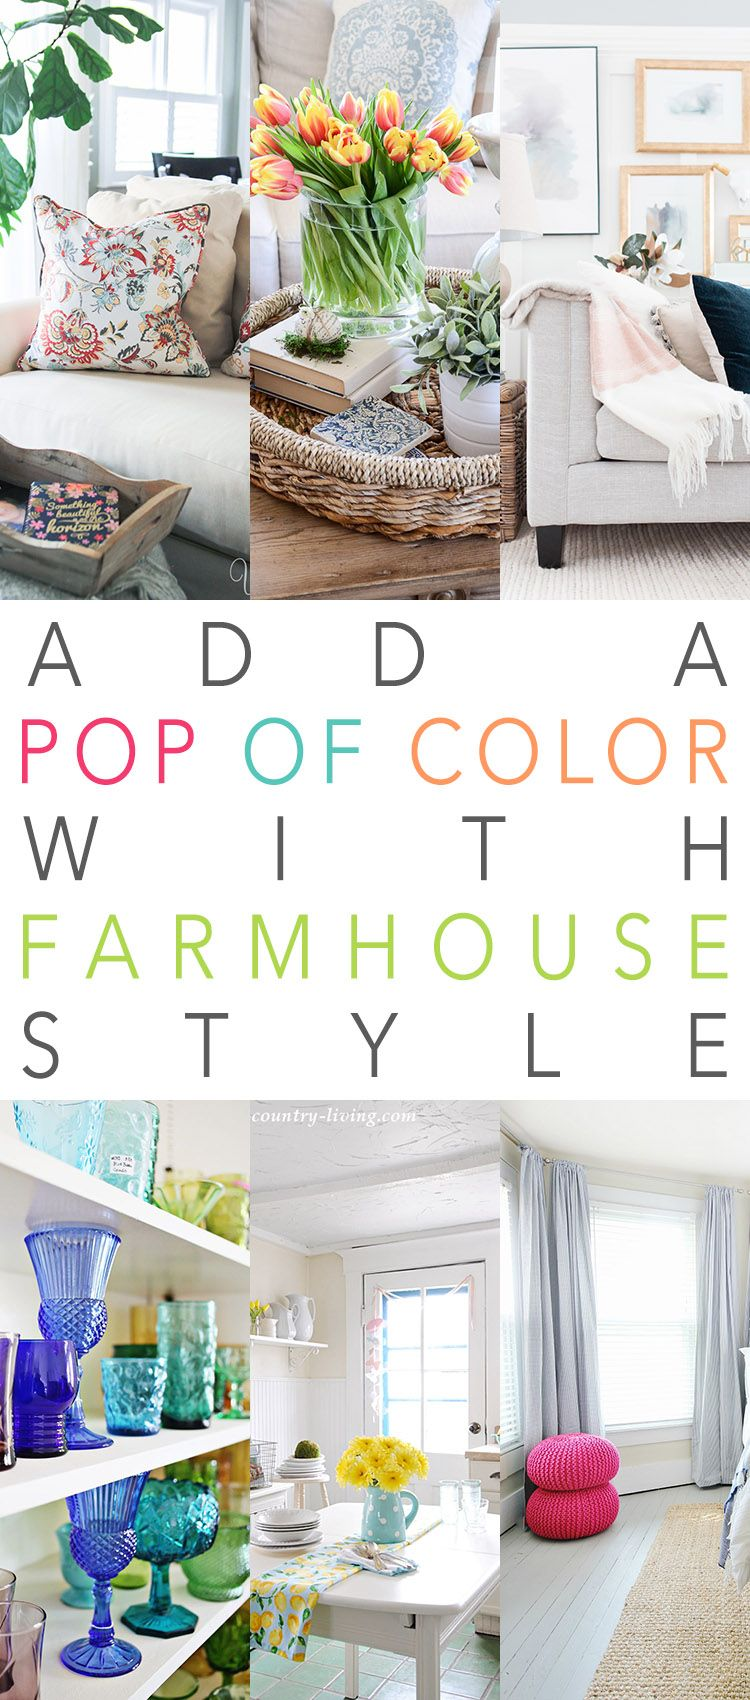 Add A Pop Of Color With Farmhouse Style The Cottage Market Country House Decor Country Farmhouse Style Country Farmhouse Decor Adding color to living room